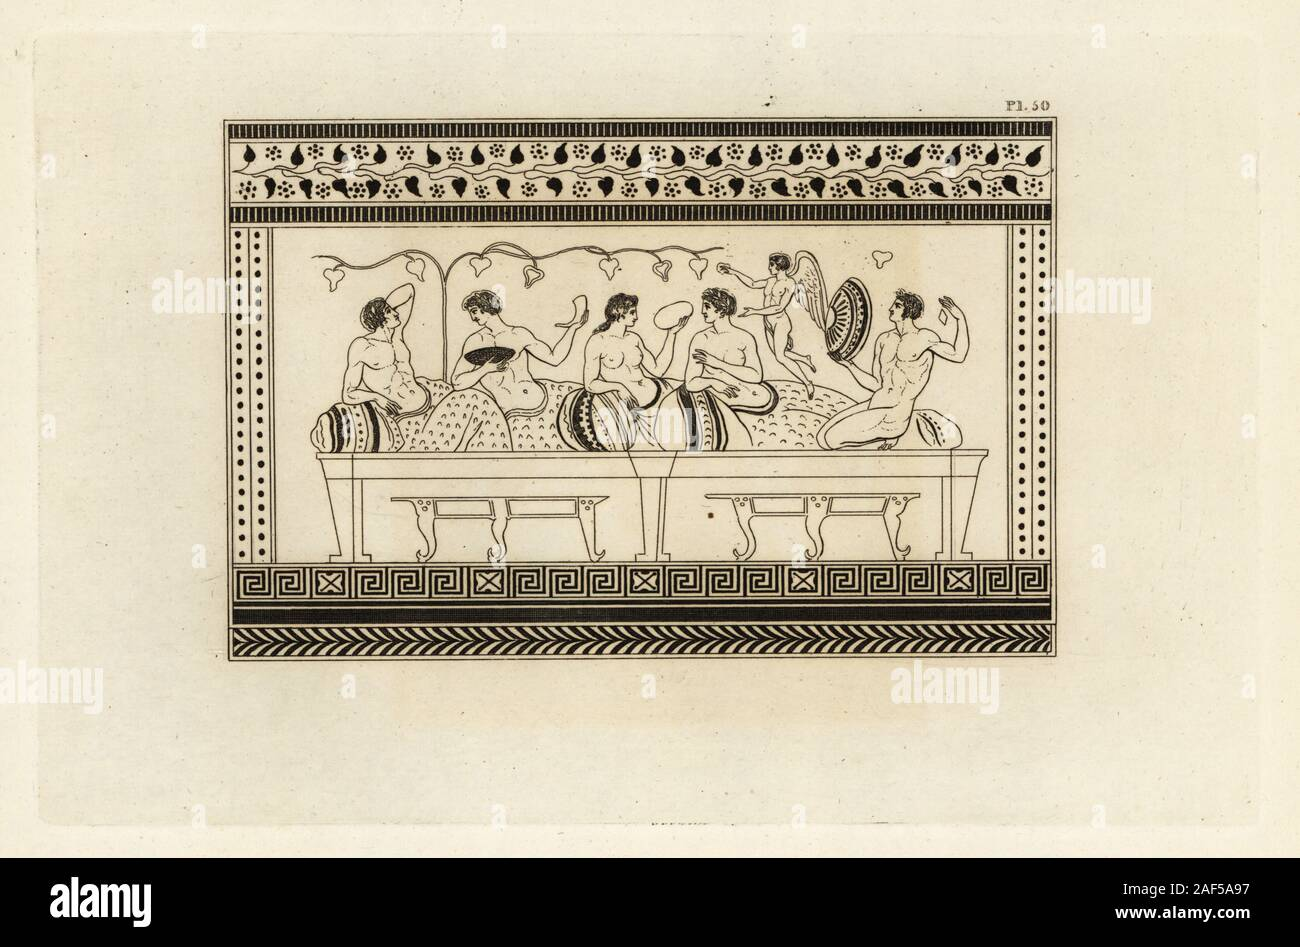 Bacchanalia or festival to Bacchus, Roman god of wine. Men and women lounge on sofas at a feast, while a genius of Bacchus flies above. Copperplate engraving by Thomas Kirk (1765-1797)  from Sir William Hamilton's Outlines from the Figures and Compositions upon the Greek, Roman and Etruscan Vases of the Late Sir Hamilton, T. M'Lean, London, 1834. Stock Photo